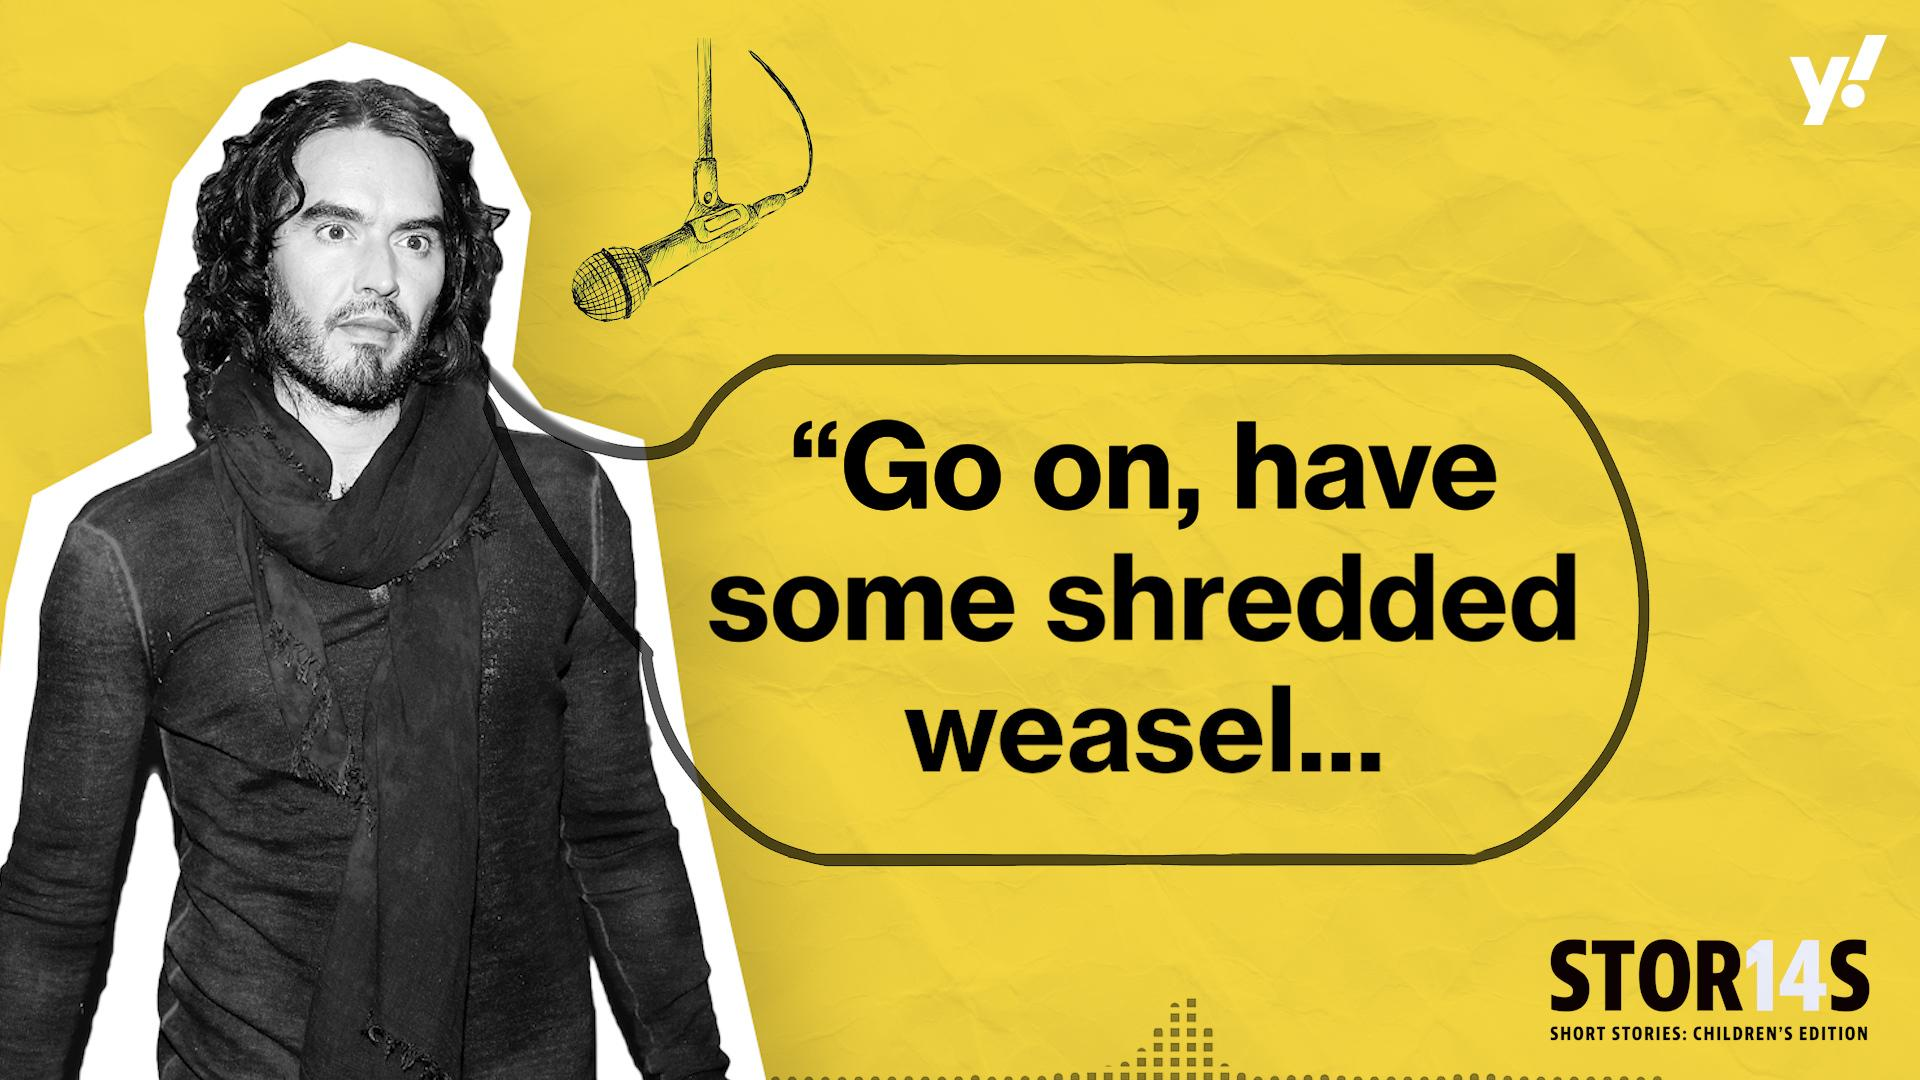 Sneak peek: Russell Brand reads Aargh! There's a Monster in my School!